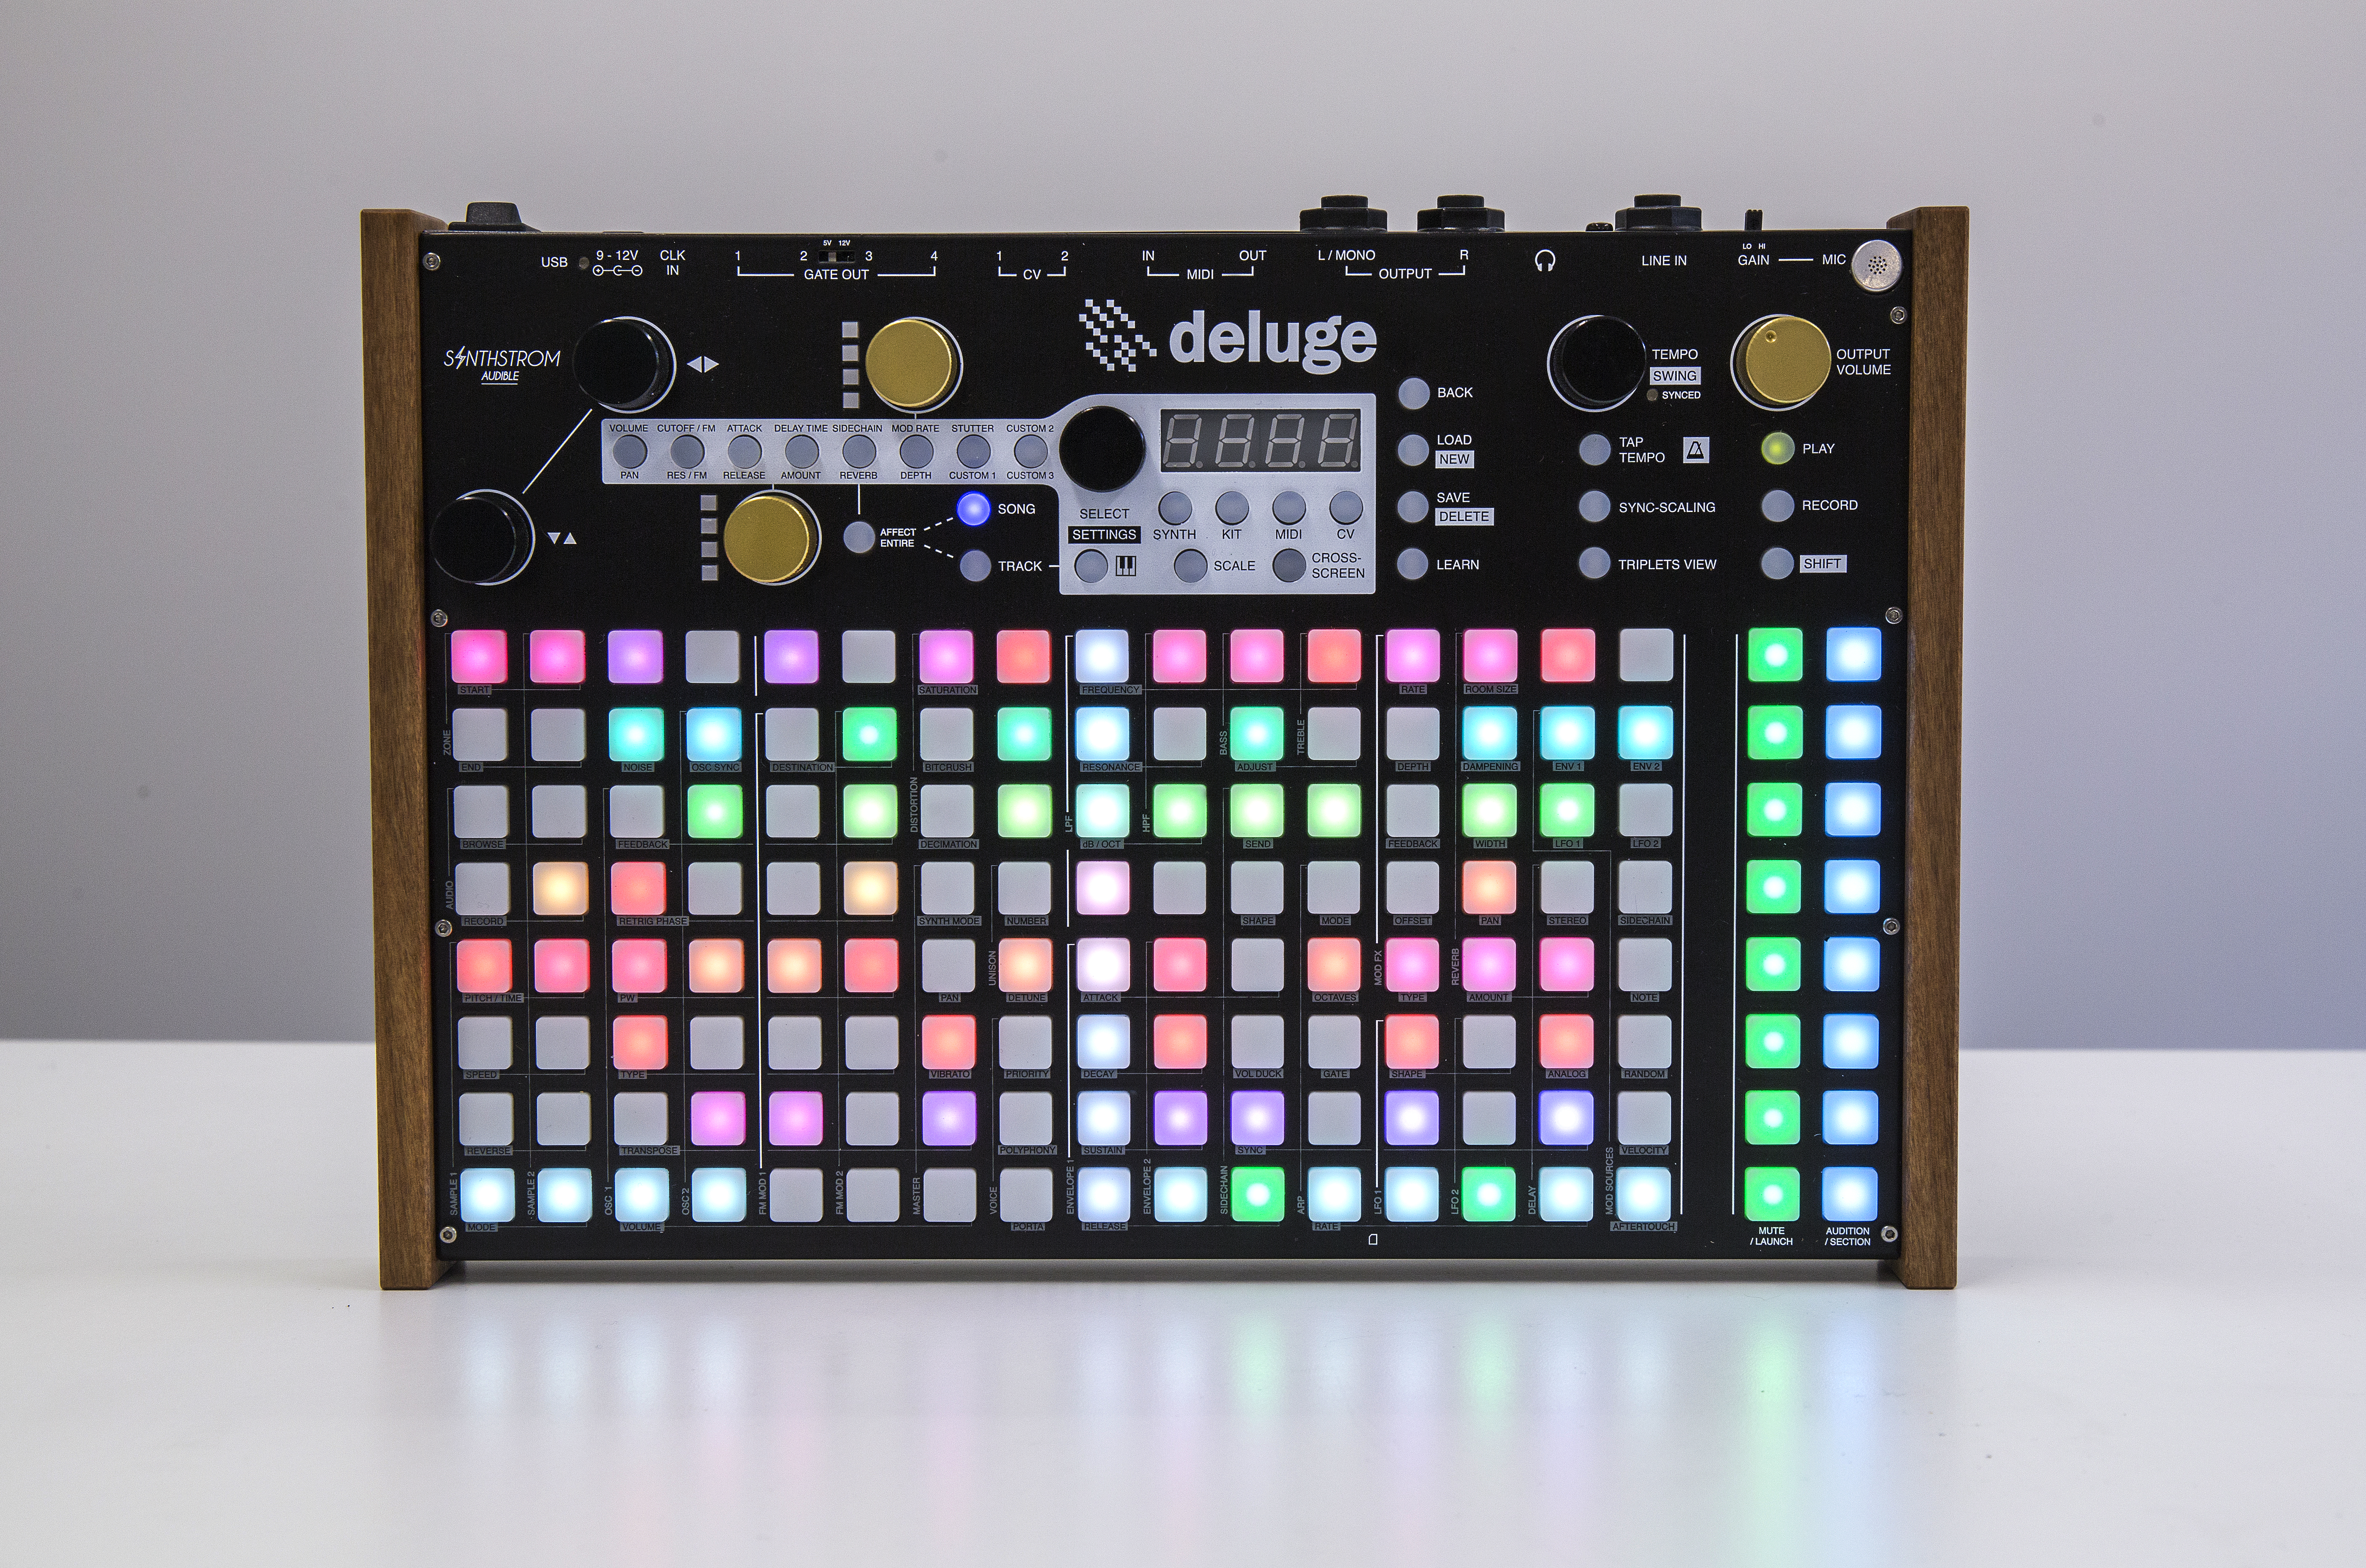 Synthstrom Audible Deluge 2 0 Firmware Is Now Available